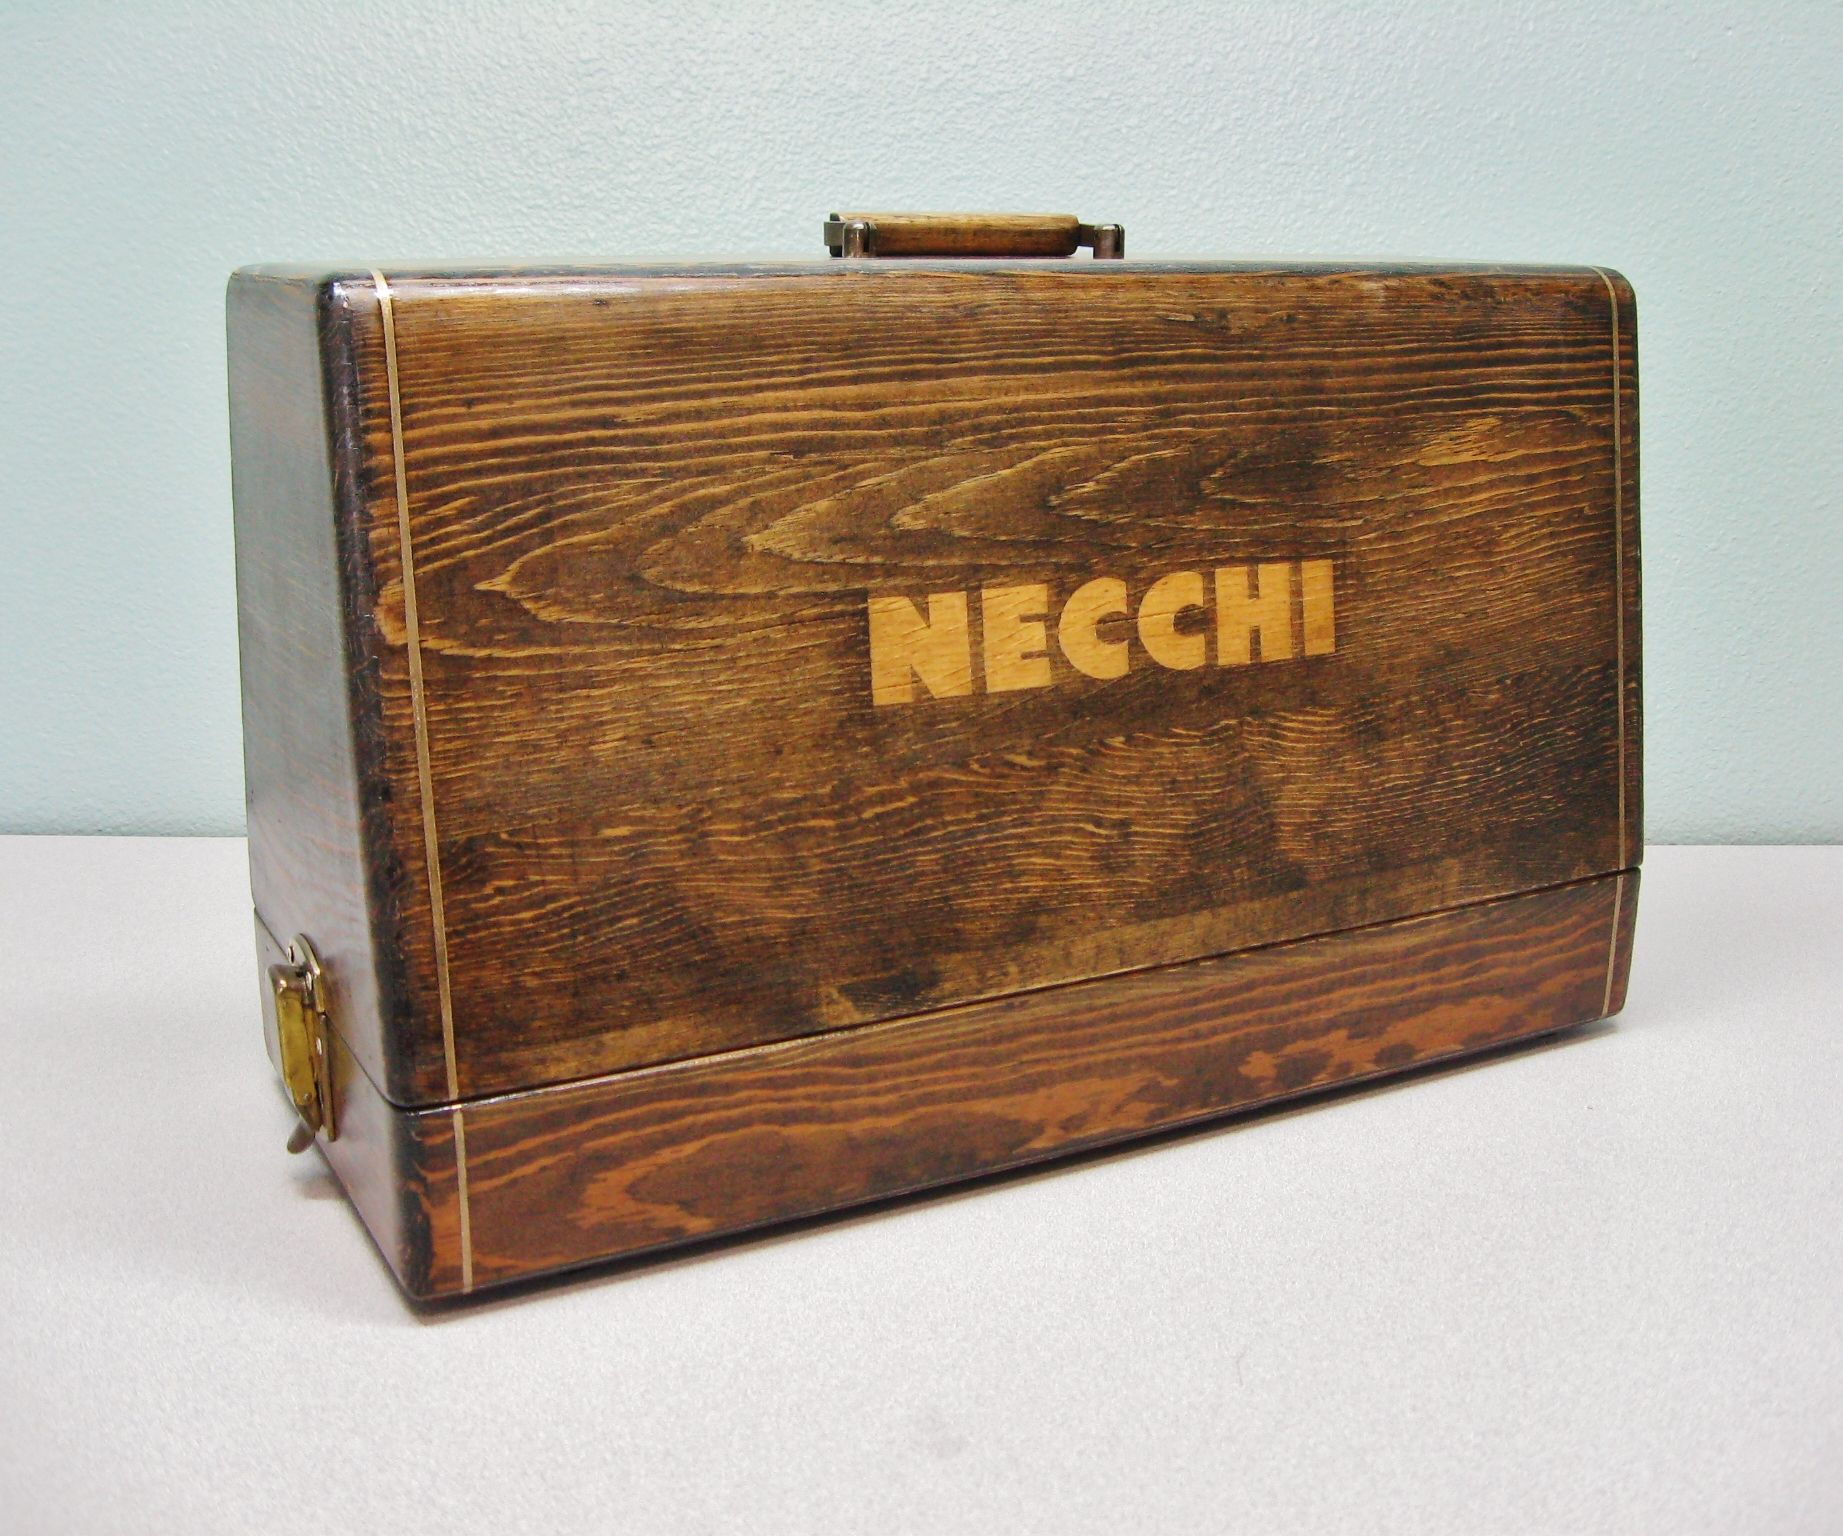 Refinish an old wooden Sewing Case